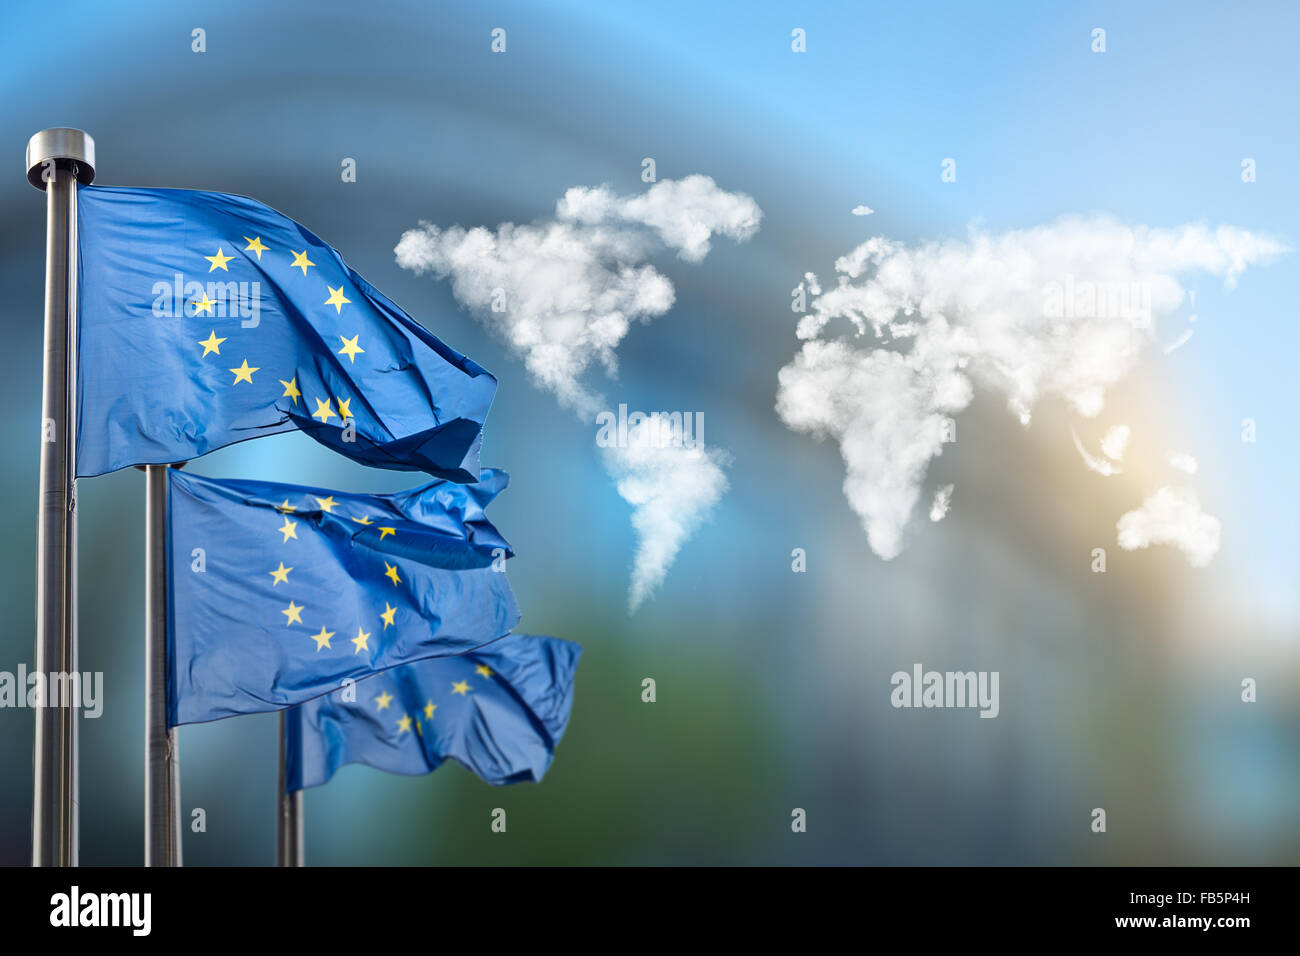 Flags of european union with world map made of clouds against stock flags of european union with world map made of clouds against european parliament in brussels belgium gumiabroncs Gallery